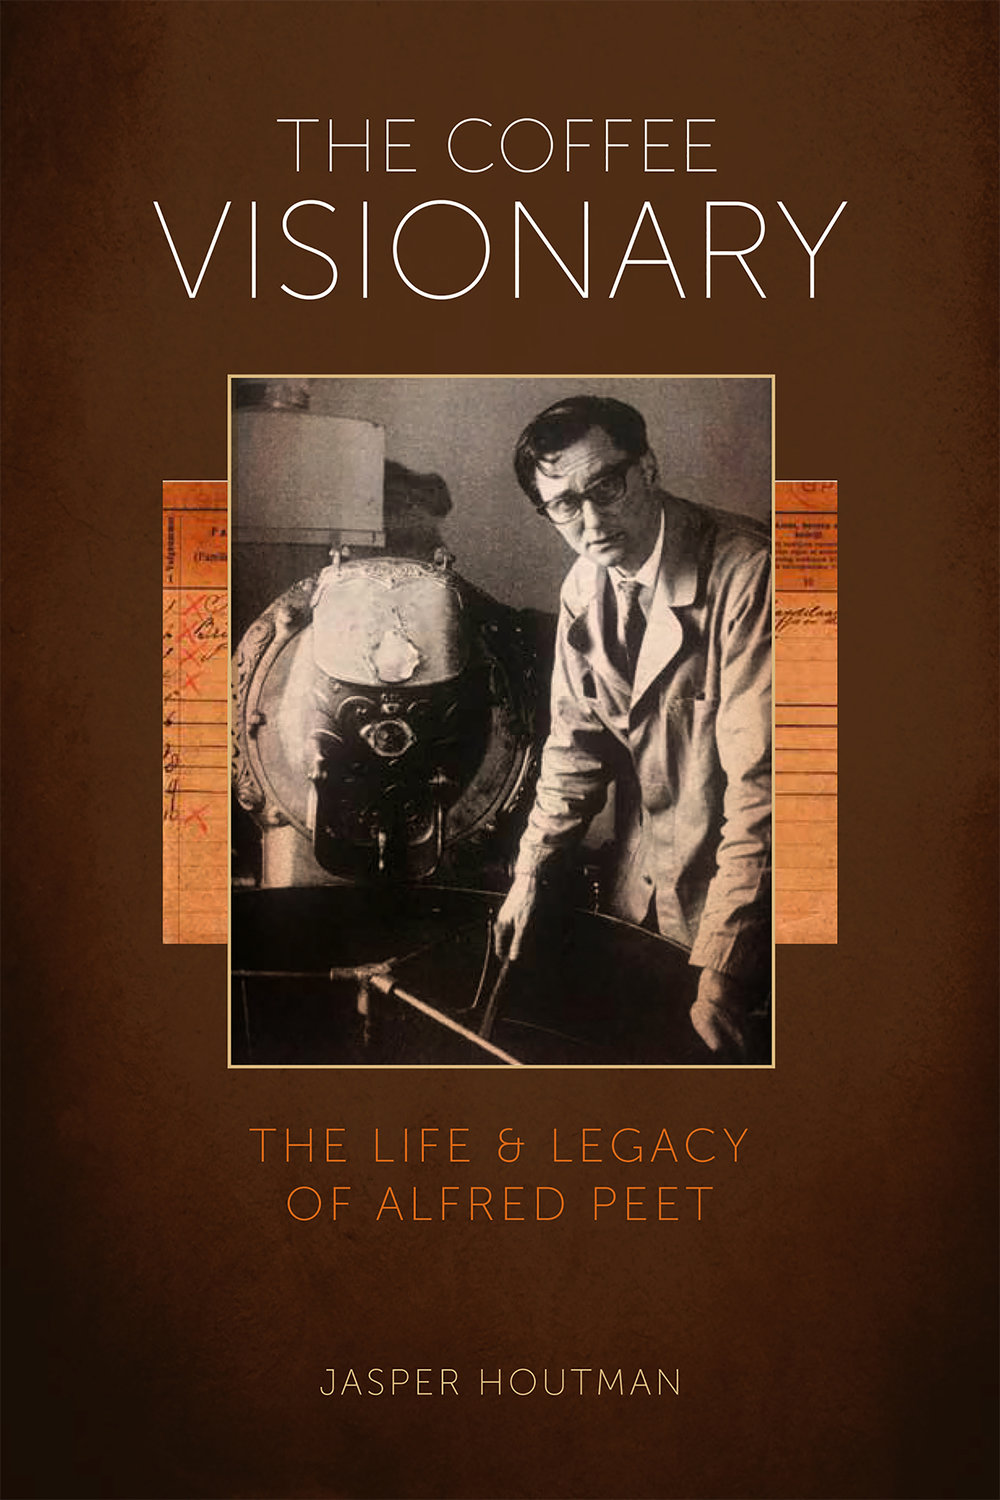 """The Coffee Visionary: The Life & Legacy of Alfred Peet- by Jasper Houtman - When Alfred Peet opened Peet's Coffee, Tea & Spices in Berkeley, California, in 1966, and started selling small batches of on-site, hand-roasted coffee beans, the renowned roastmaster had no way of knowing that he was brewing a coffee revolution and defining the coffee culture we know and love today. At a time when most Americans drank coffee percolated from canned grounds, Peet, the son of a coffee roaster from a small town in the Netherlands, laid the foundation for specialty coffee in the United States.Part biography of Alfred Peet, part history of the coffee industry, The Coffee Visionary provides a look behind the curtain at this unique, captivating beverage. Through the use of interviews and archival photographs, Houtman sheds light on Peet's life and legacy, as well as the history behind the iconic West Coast coffee brand that bears his name. The book weaves together elements of business, family history, the coffee industry, and more. Peet's attention to detail as he roasted, cupped, and served his coffee is beautifully captured in Houtman's book, and as Alfred Peet would say, """"The coffee tells my story."""""""